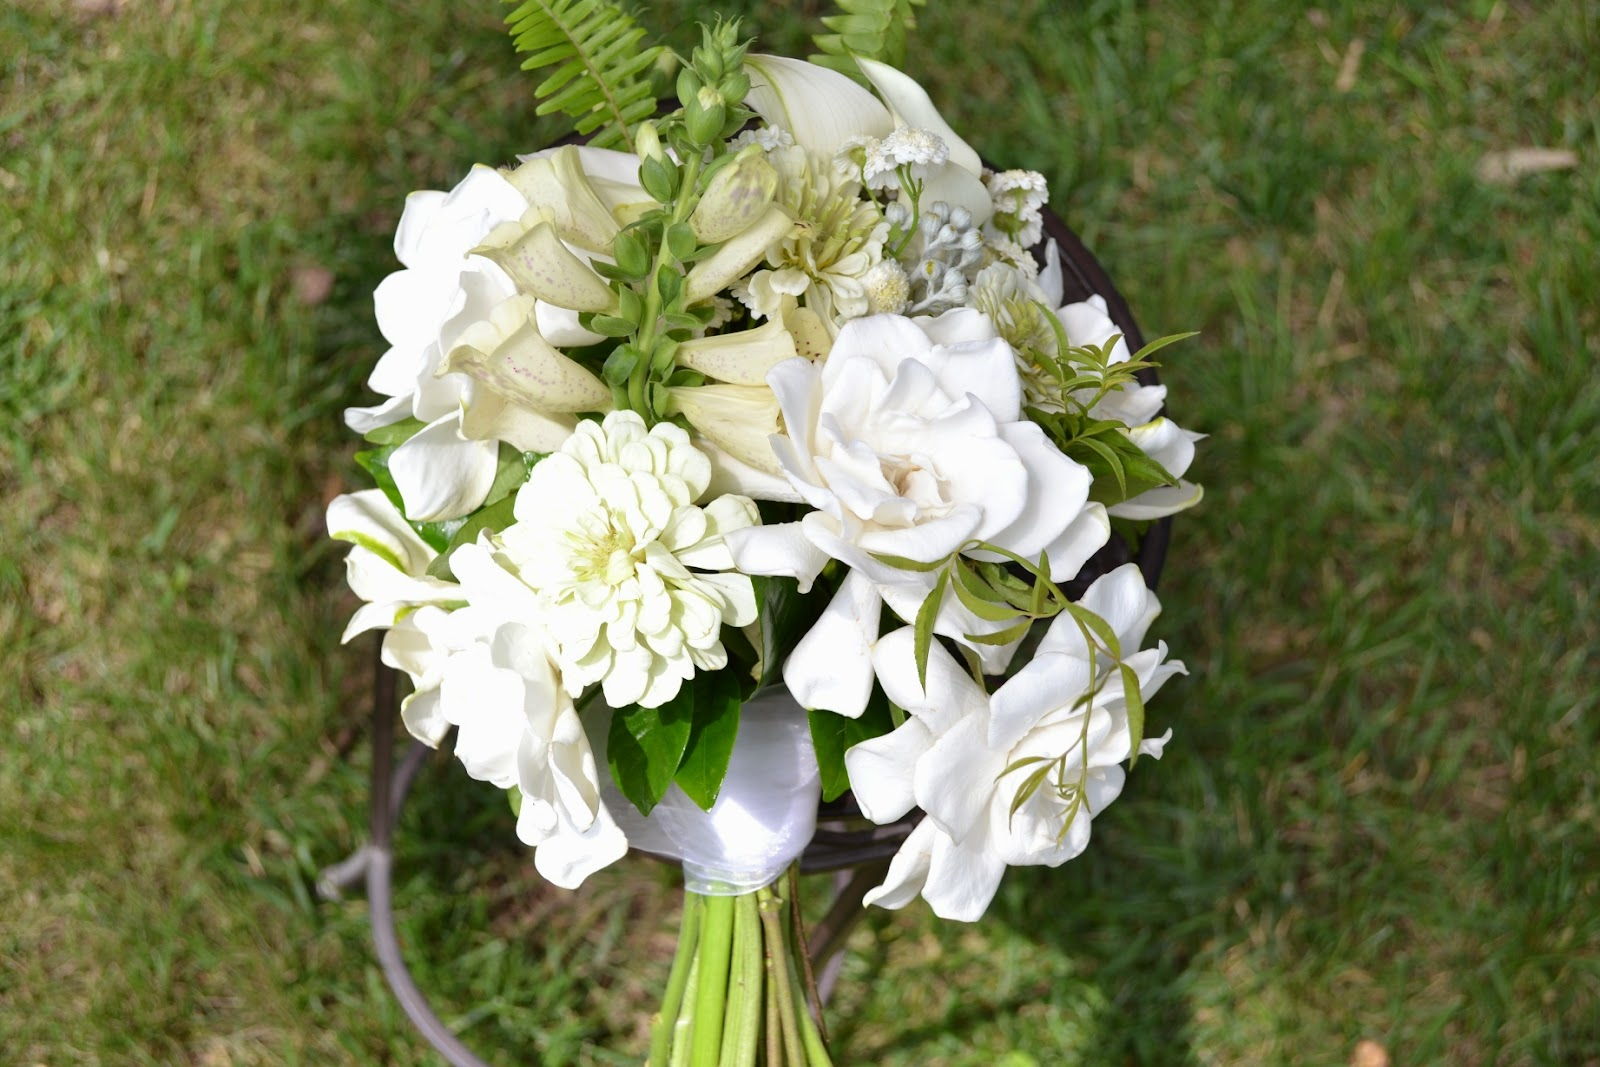 Wedding flowers from springwell gardenias for white bouquets gardenias for white bouquets izmirmasajfo